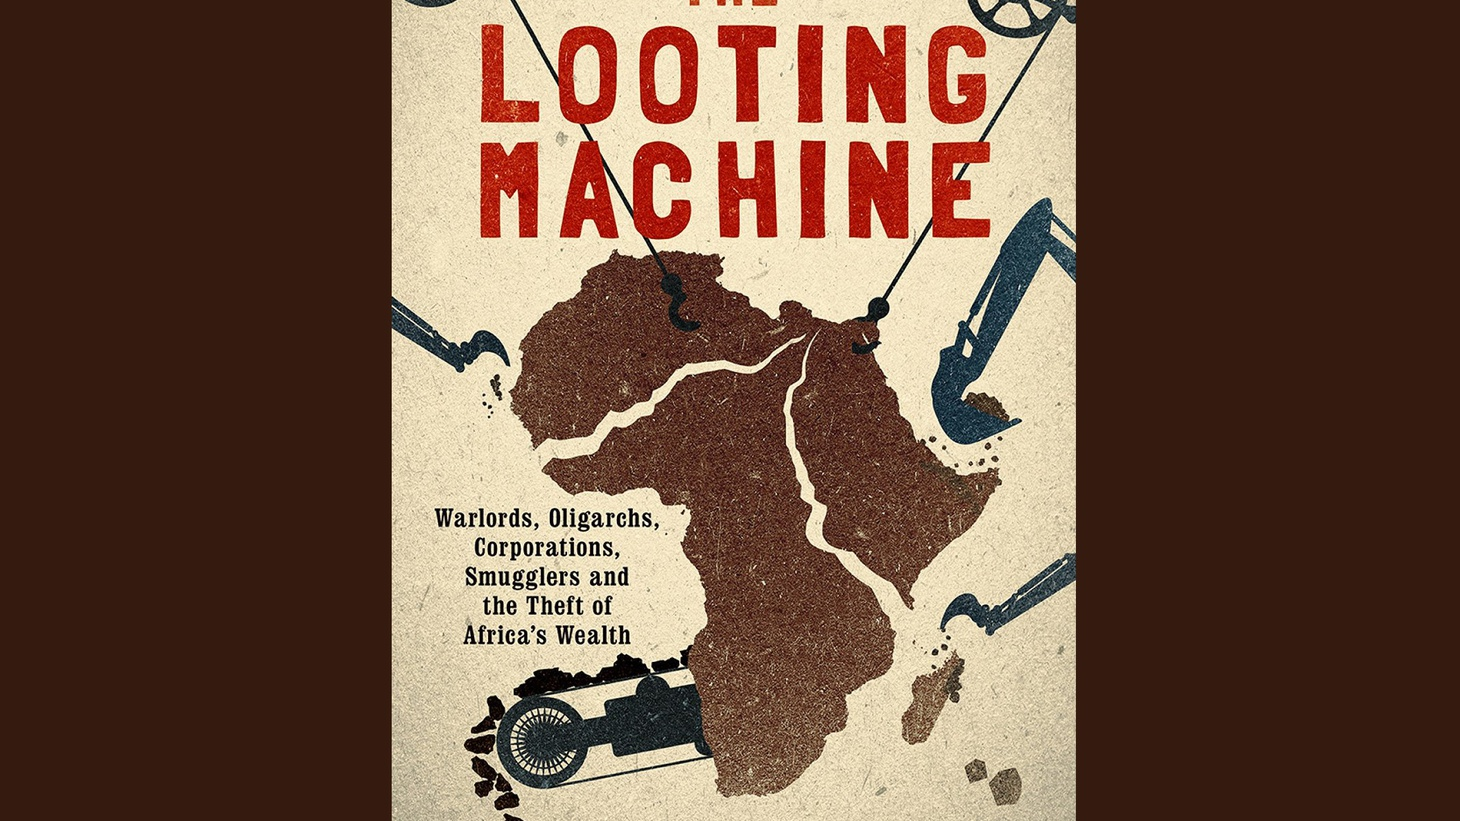 "Elections are set for this weekend in Nigeria, one of the African countries experiencing astonishing economic growth. But a but a new book gives the lie to the cliché that ""Africa's rising."" Tom Burgis is author of  The Looting Machine: Warlords, Oligarchs, Corporations, Smugglers and the Theft of Africa's Wealth ."